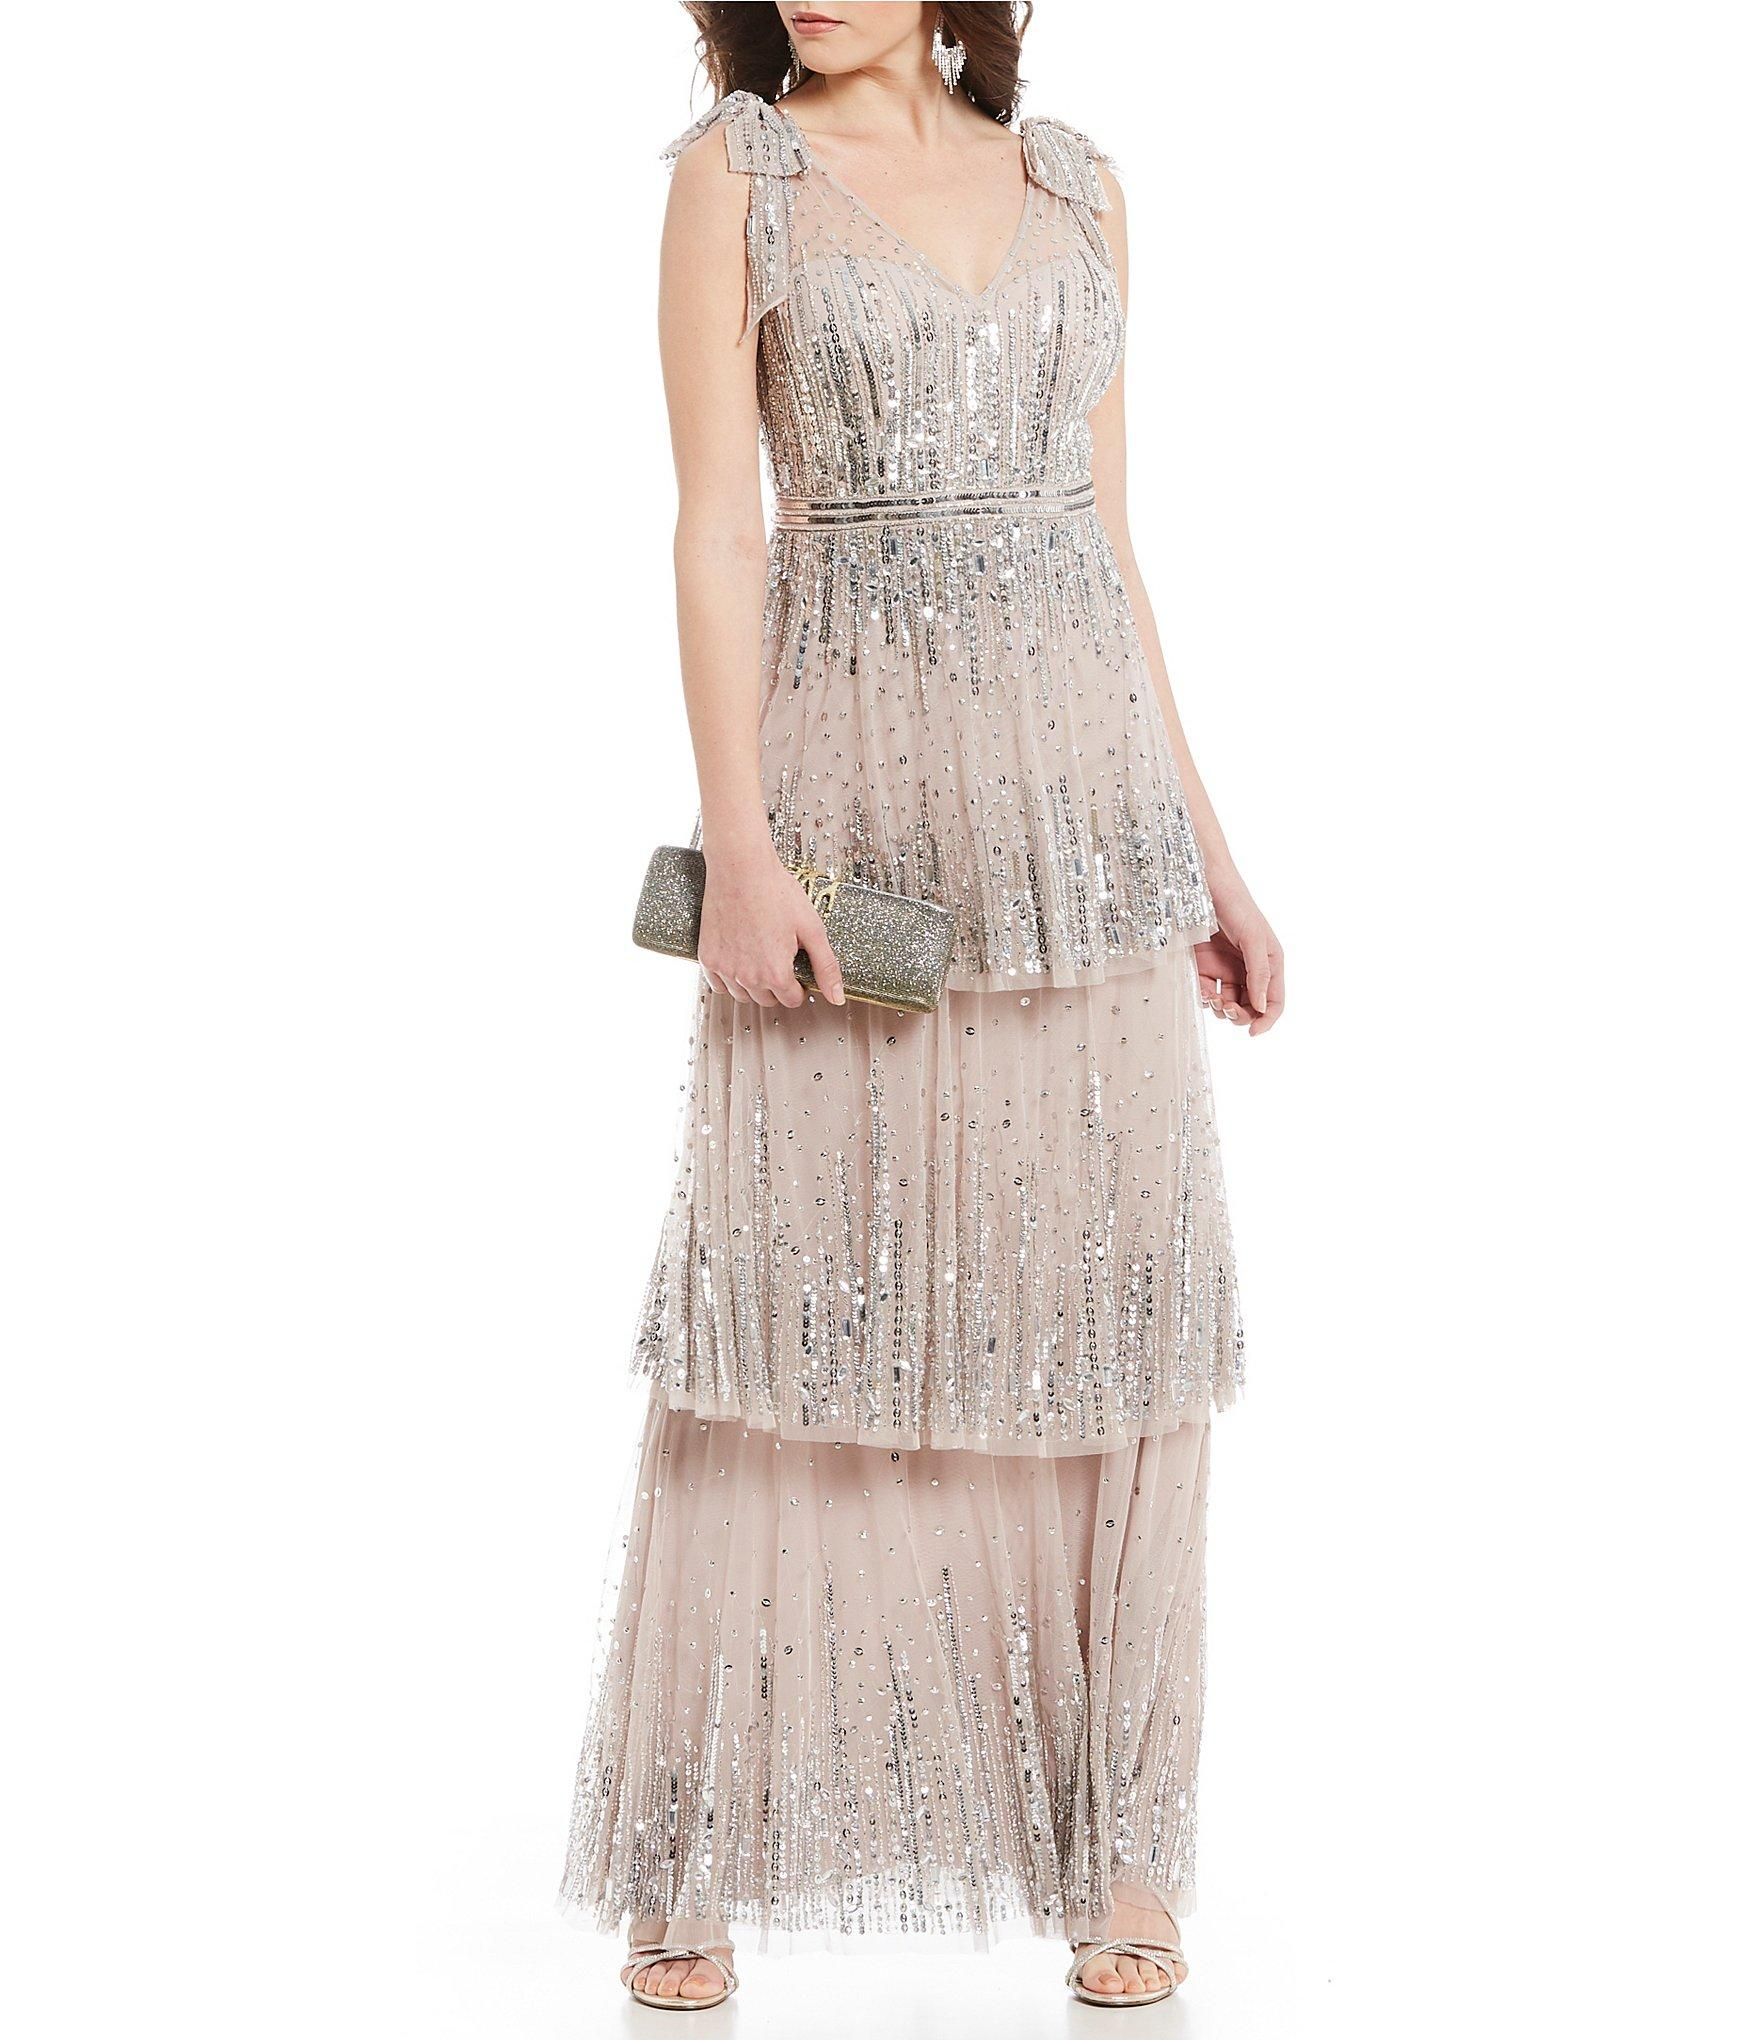 8b01ad57796 Gianni Bini Skyler Illusion Mesh Tiered Sequin Bow Detail Gown - Lyst